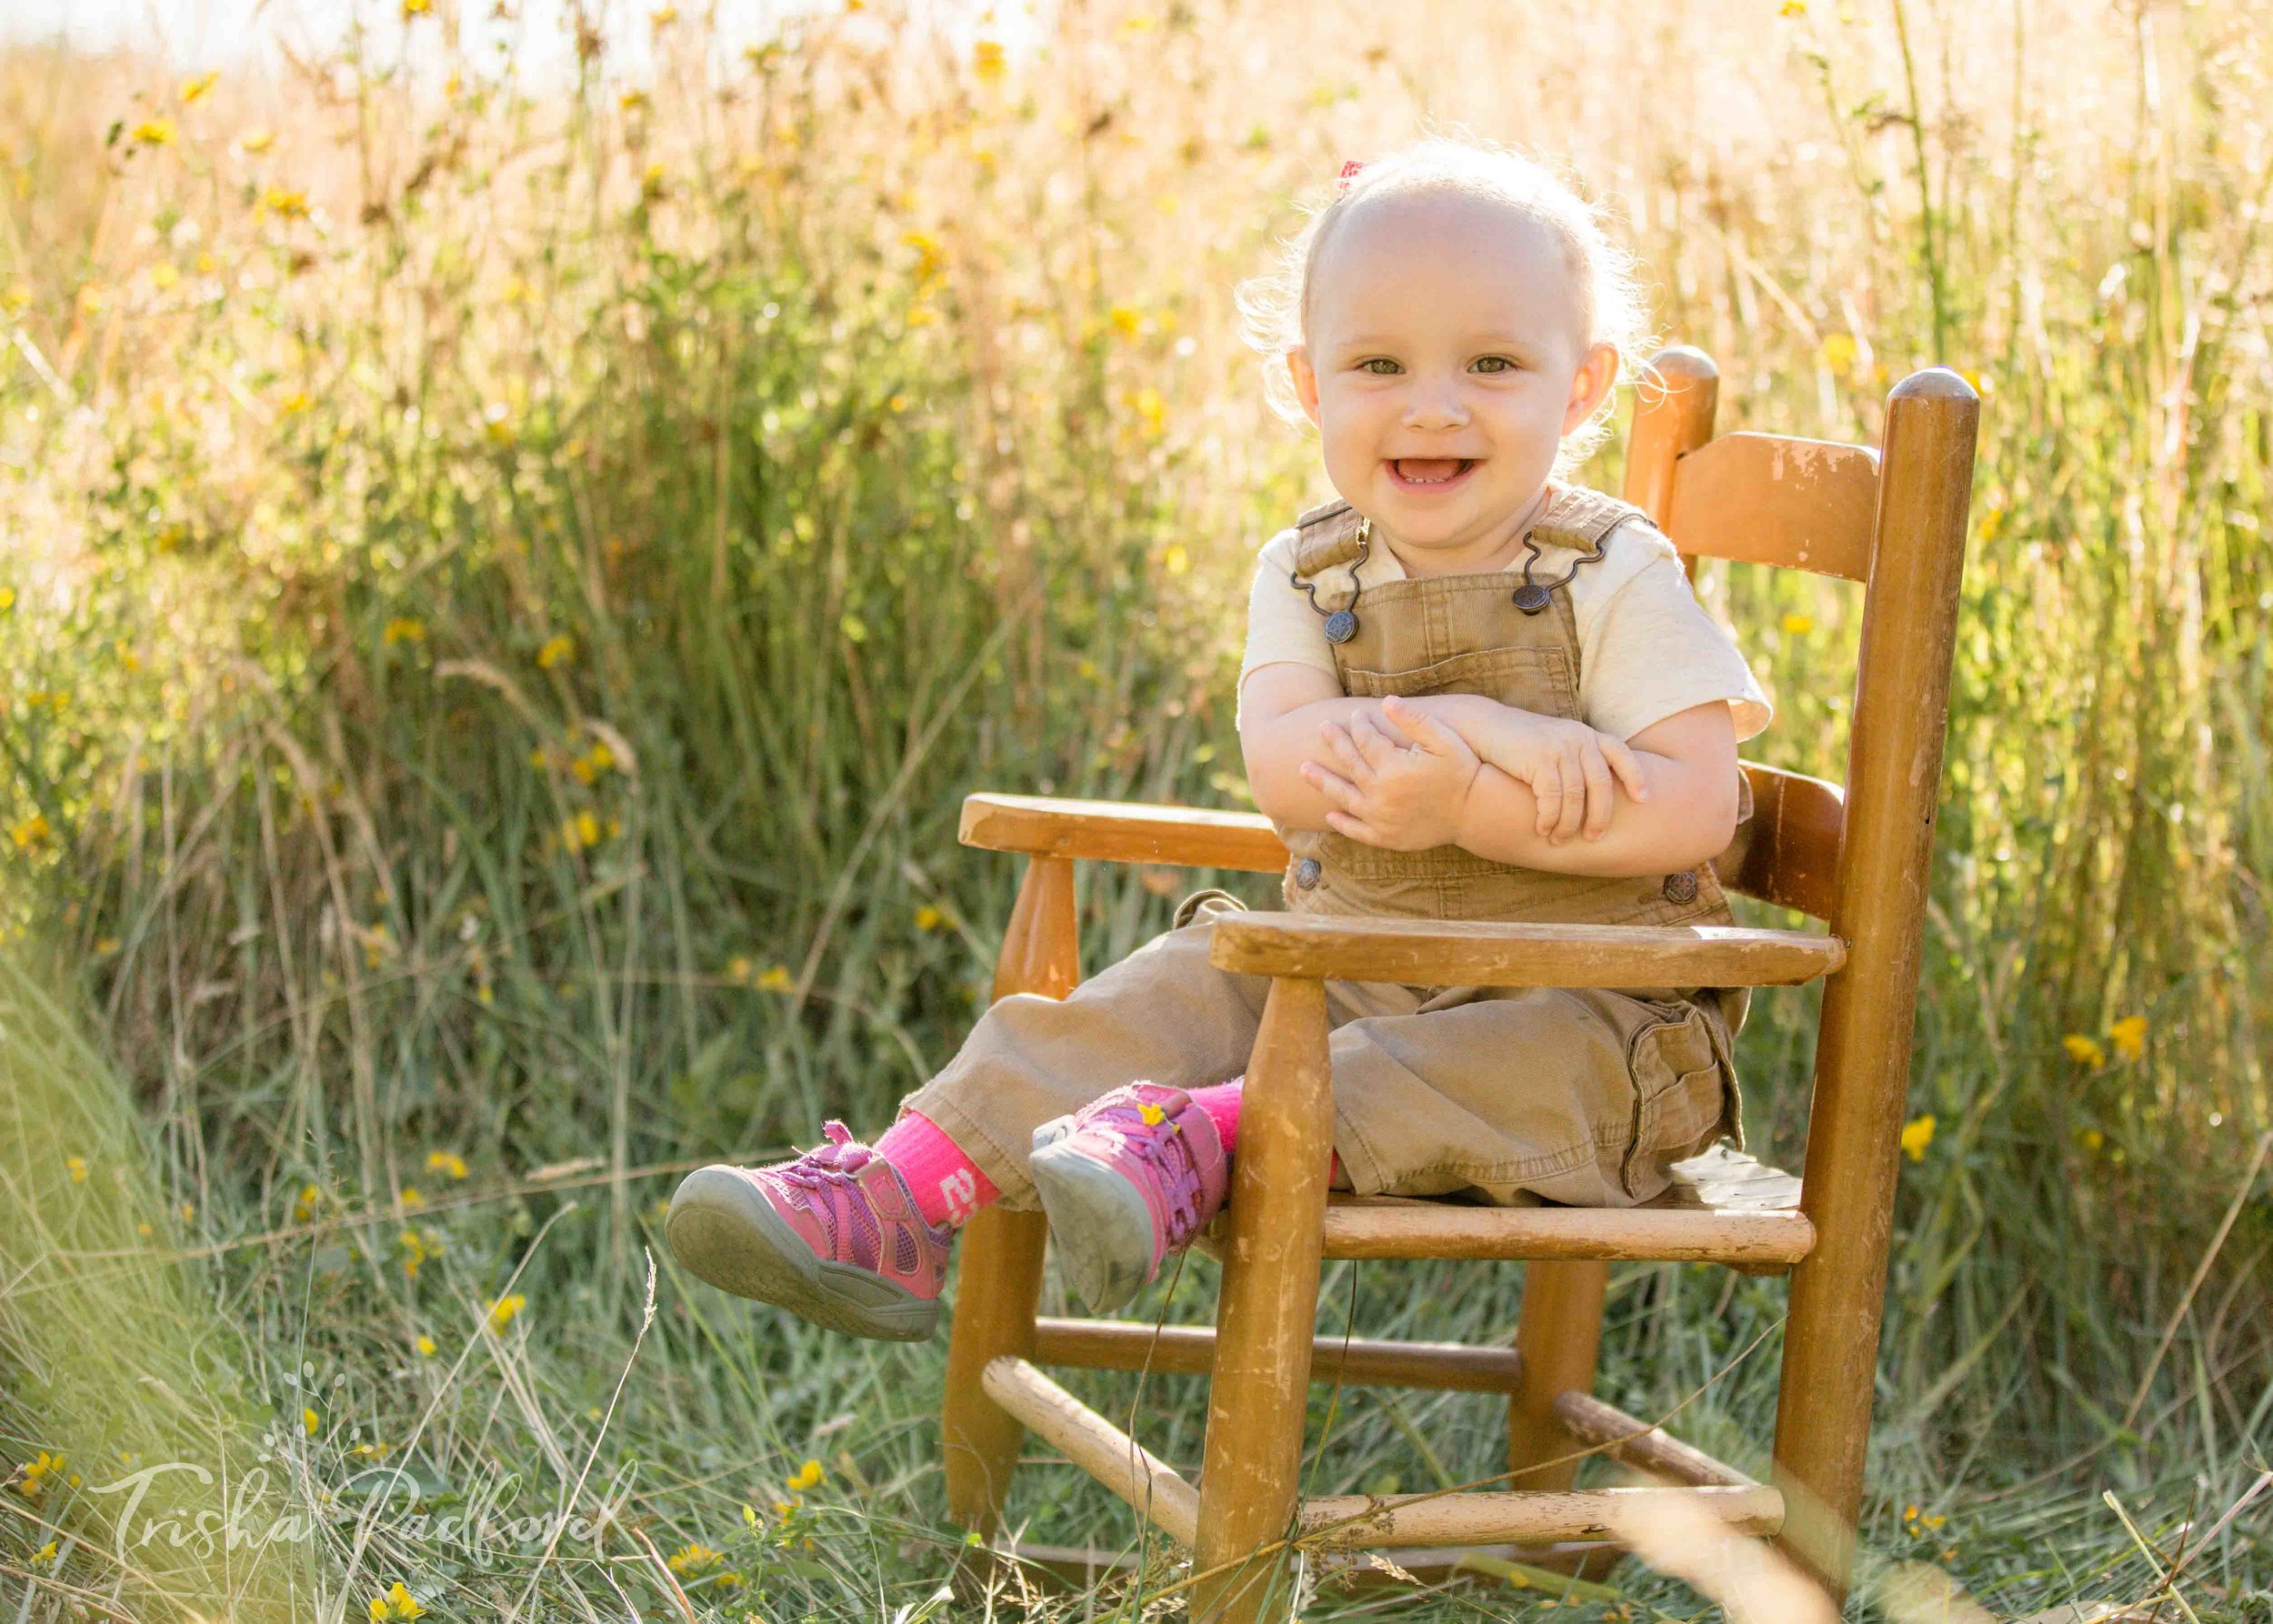 Lake Stevens Family Photographer, Toddler Photography, Snohomish County